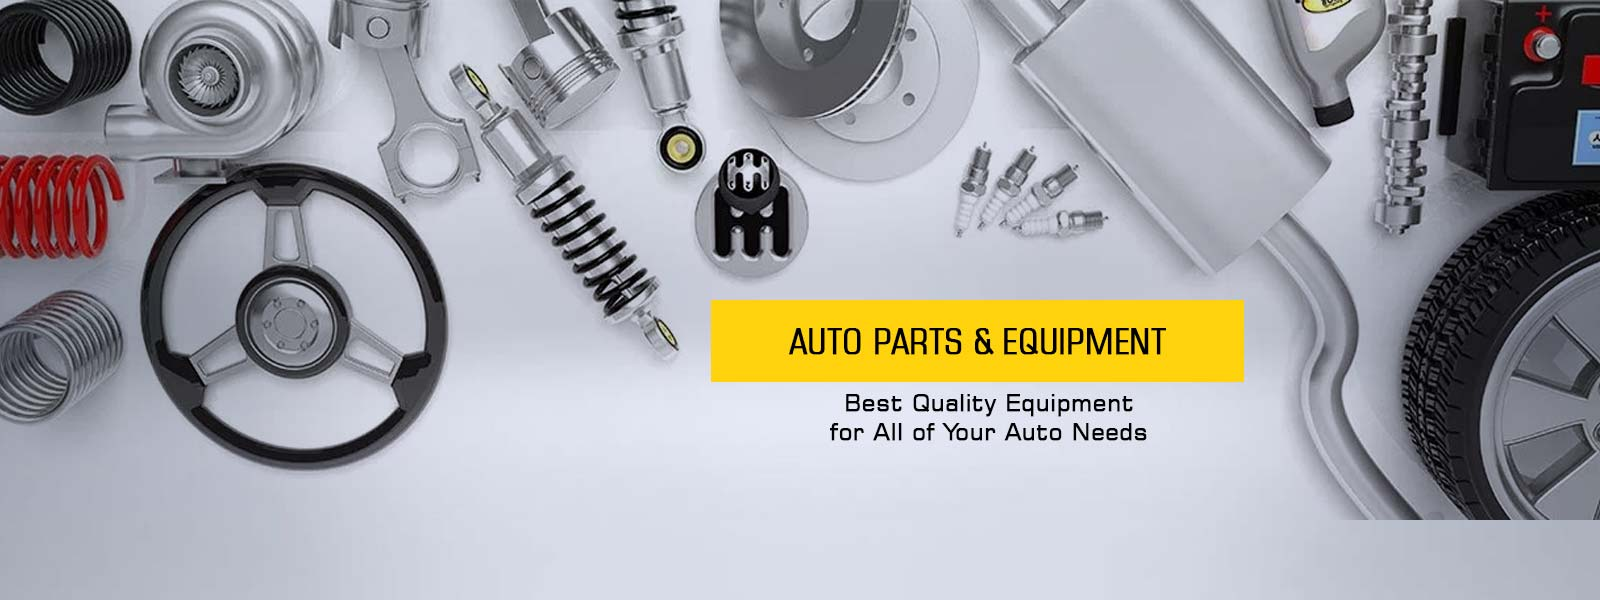 Auto Parts And Equipment Manufacturer, Exporters and Suppliers in France